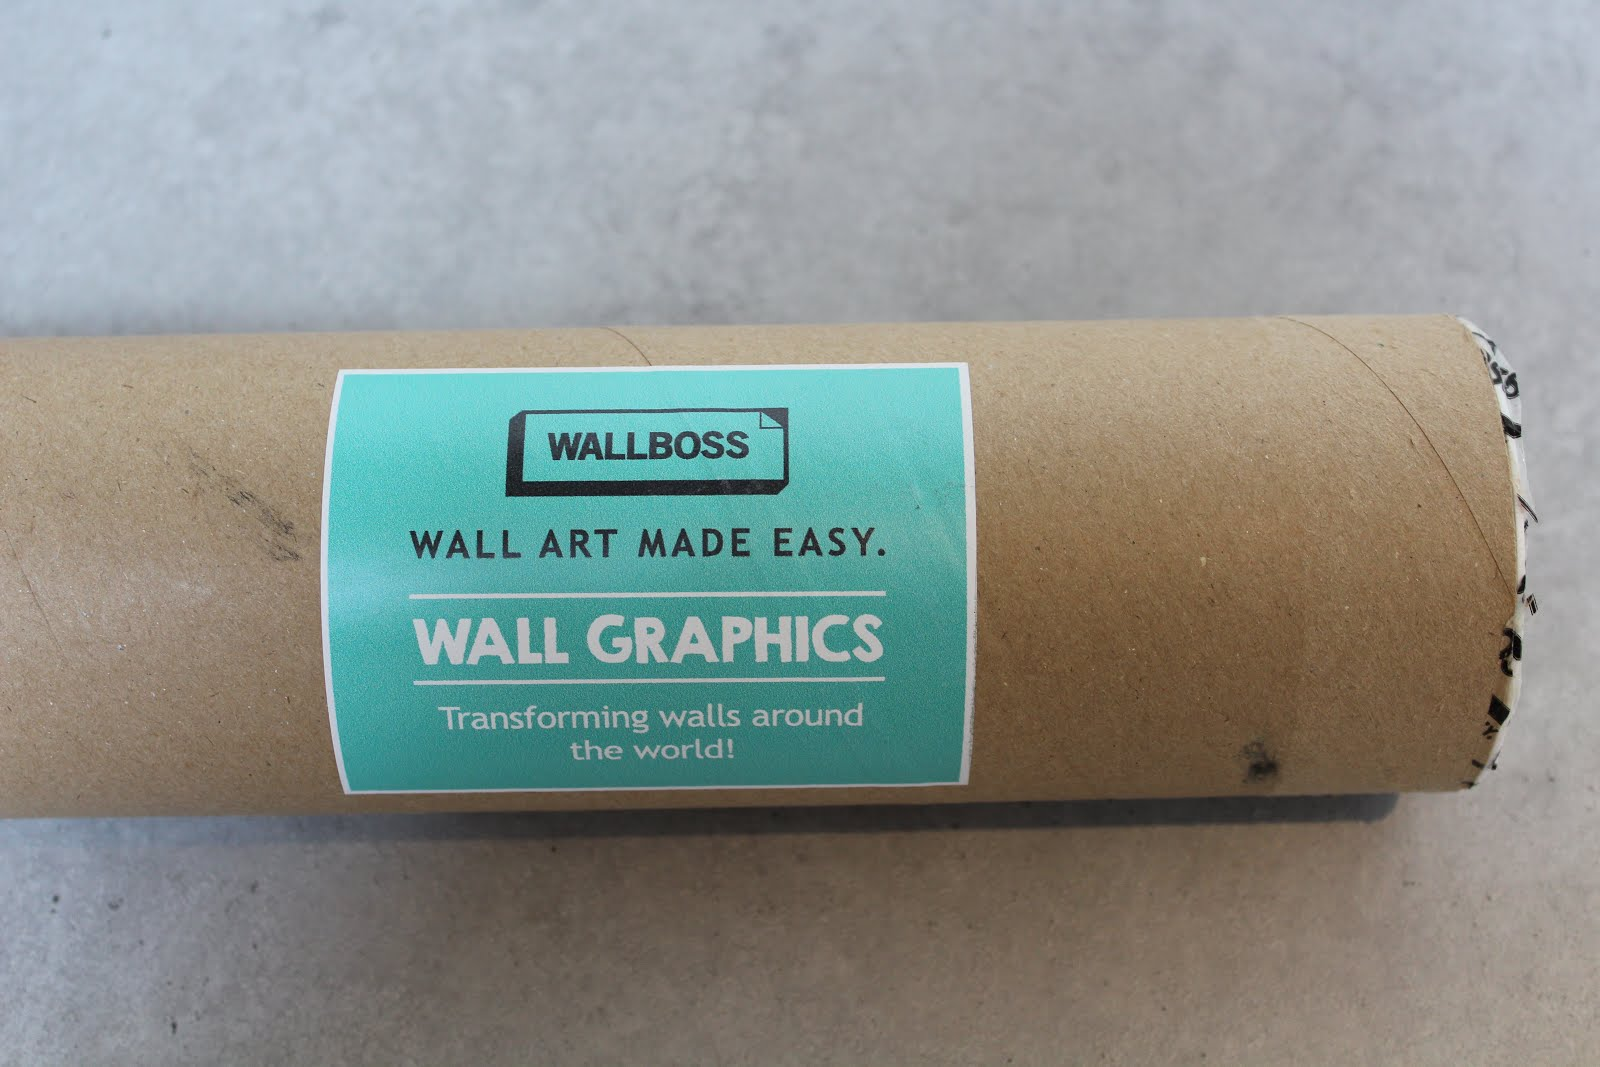 Wallboss.co.uk review